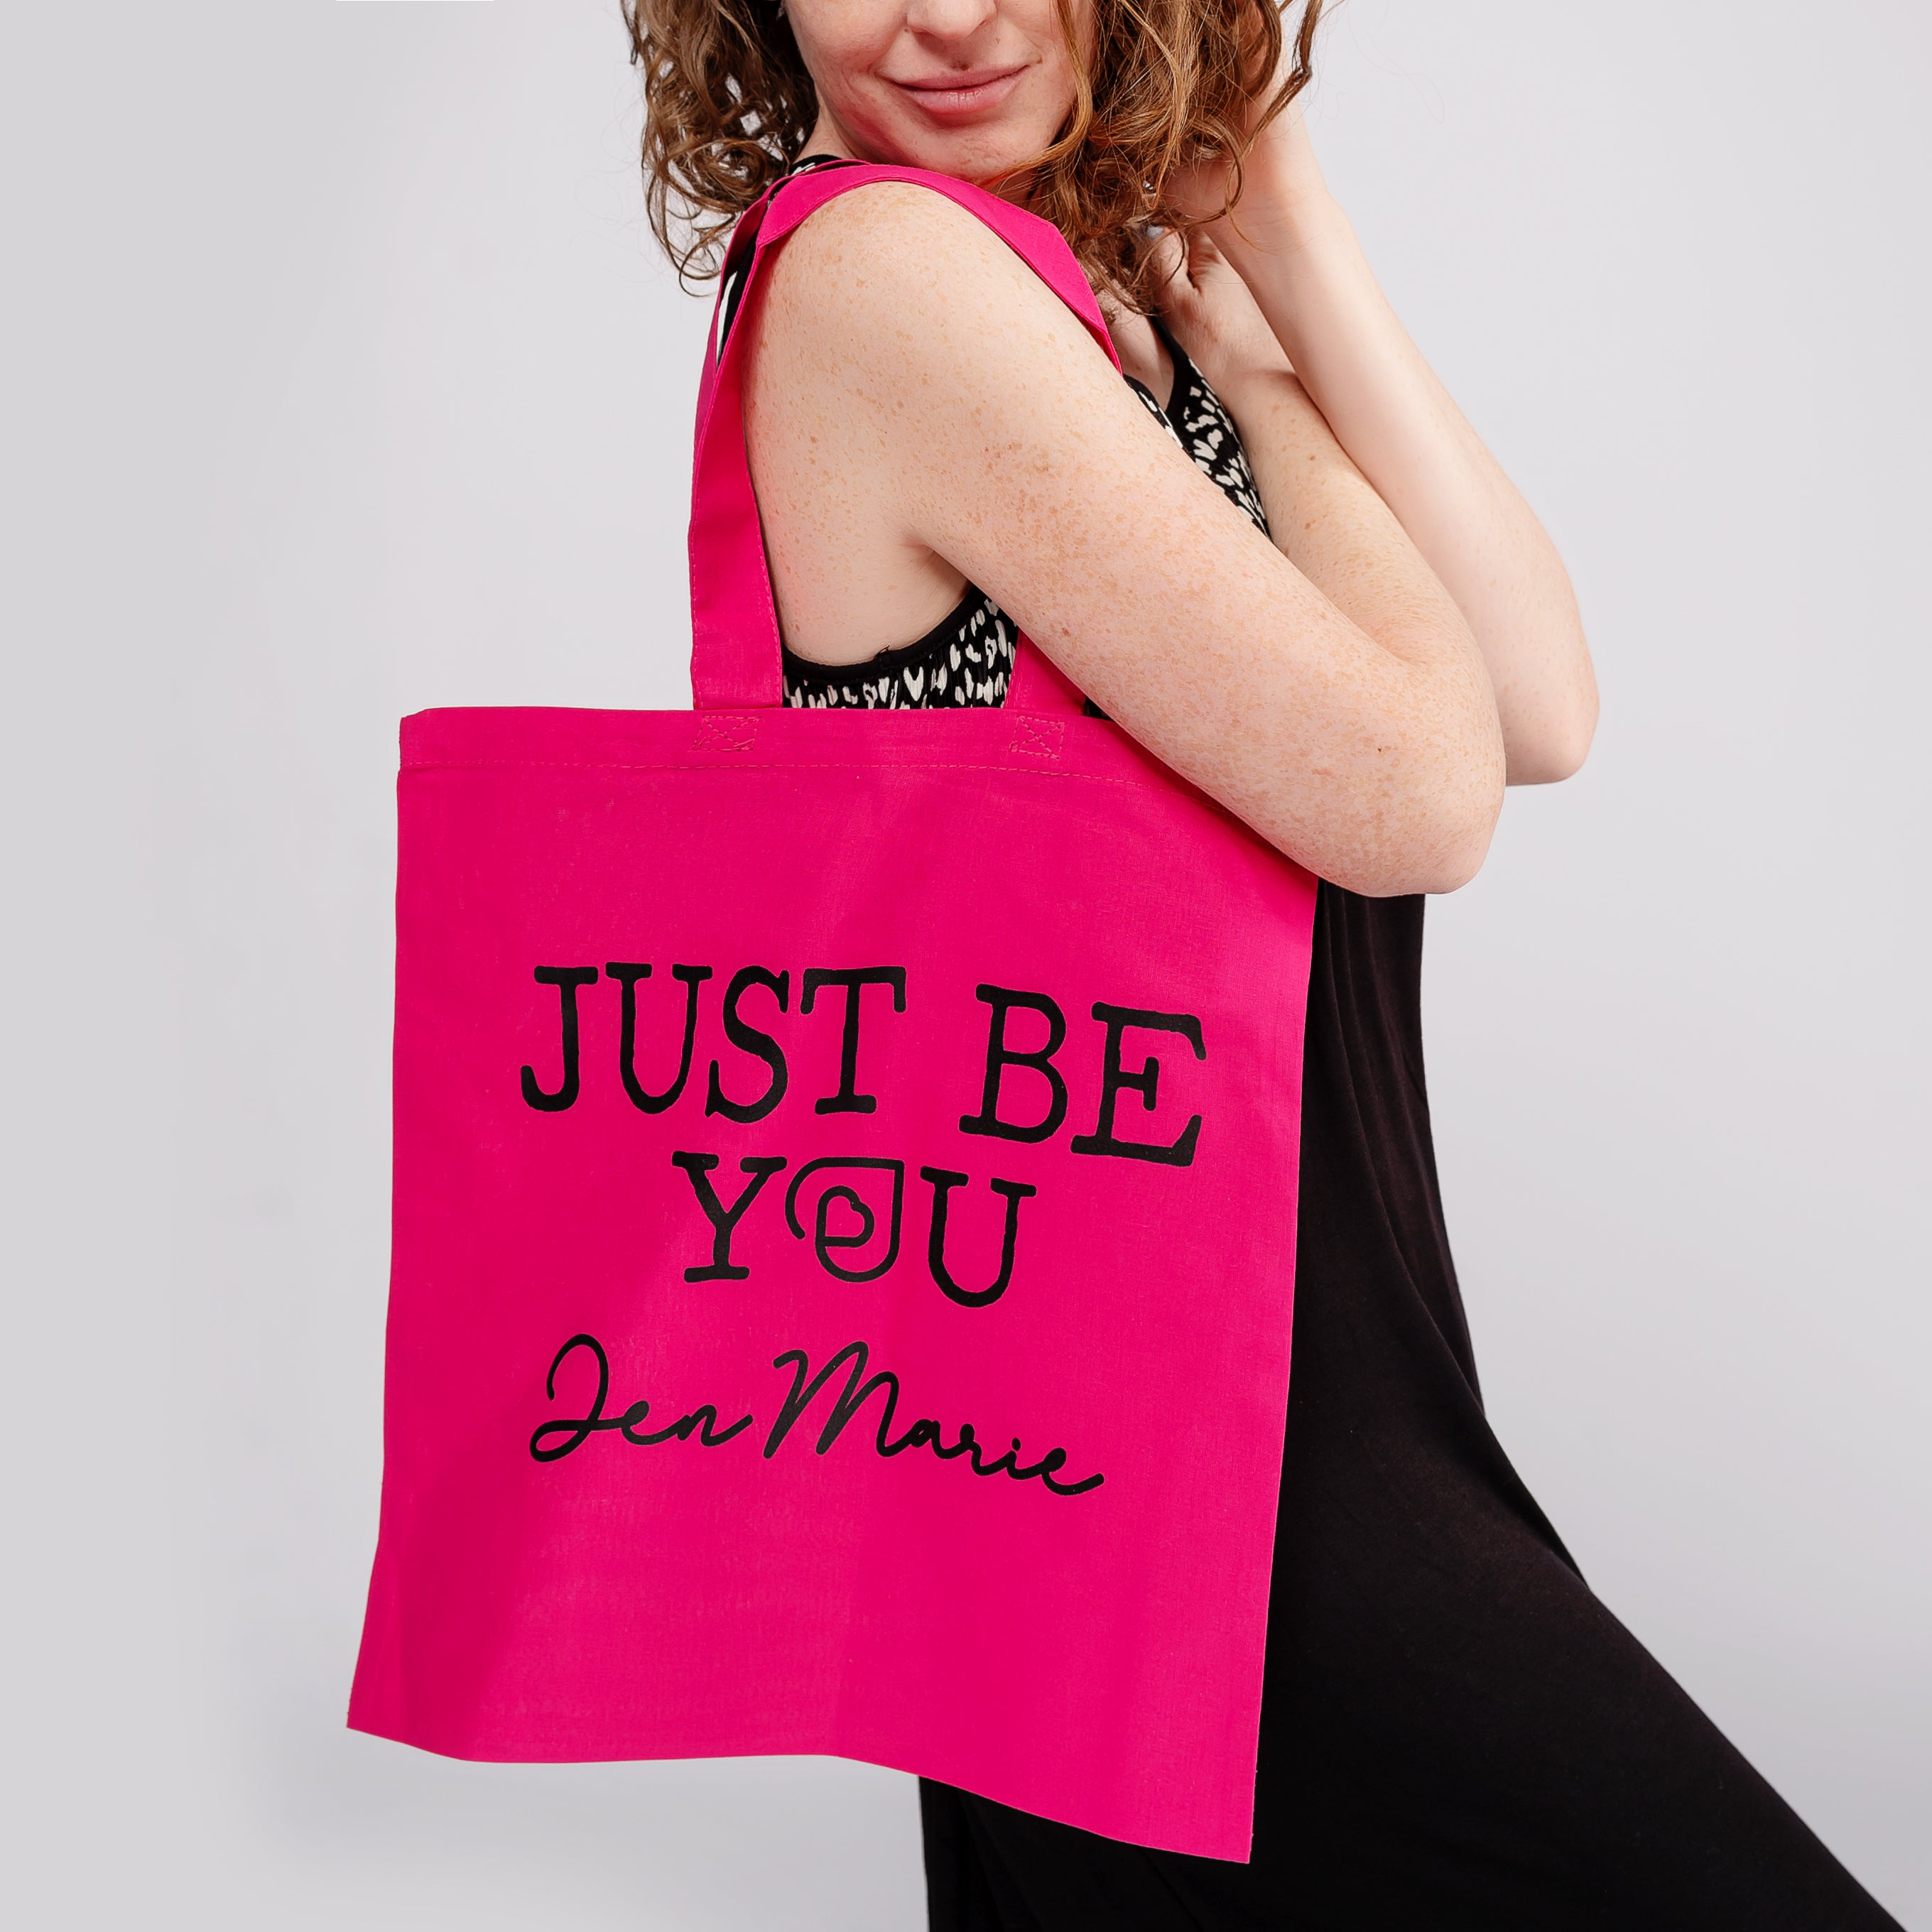 Just Be You Tote Bag by Jen Marie